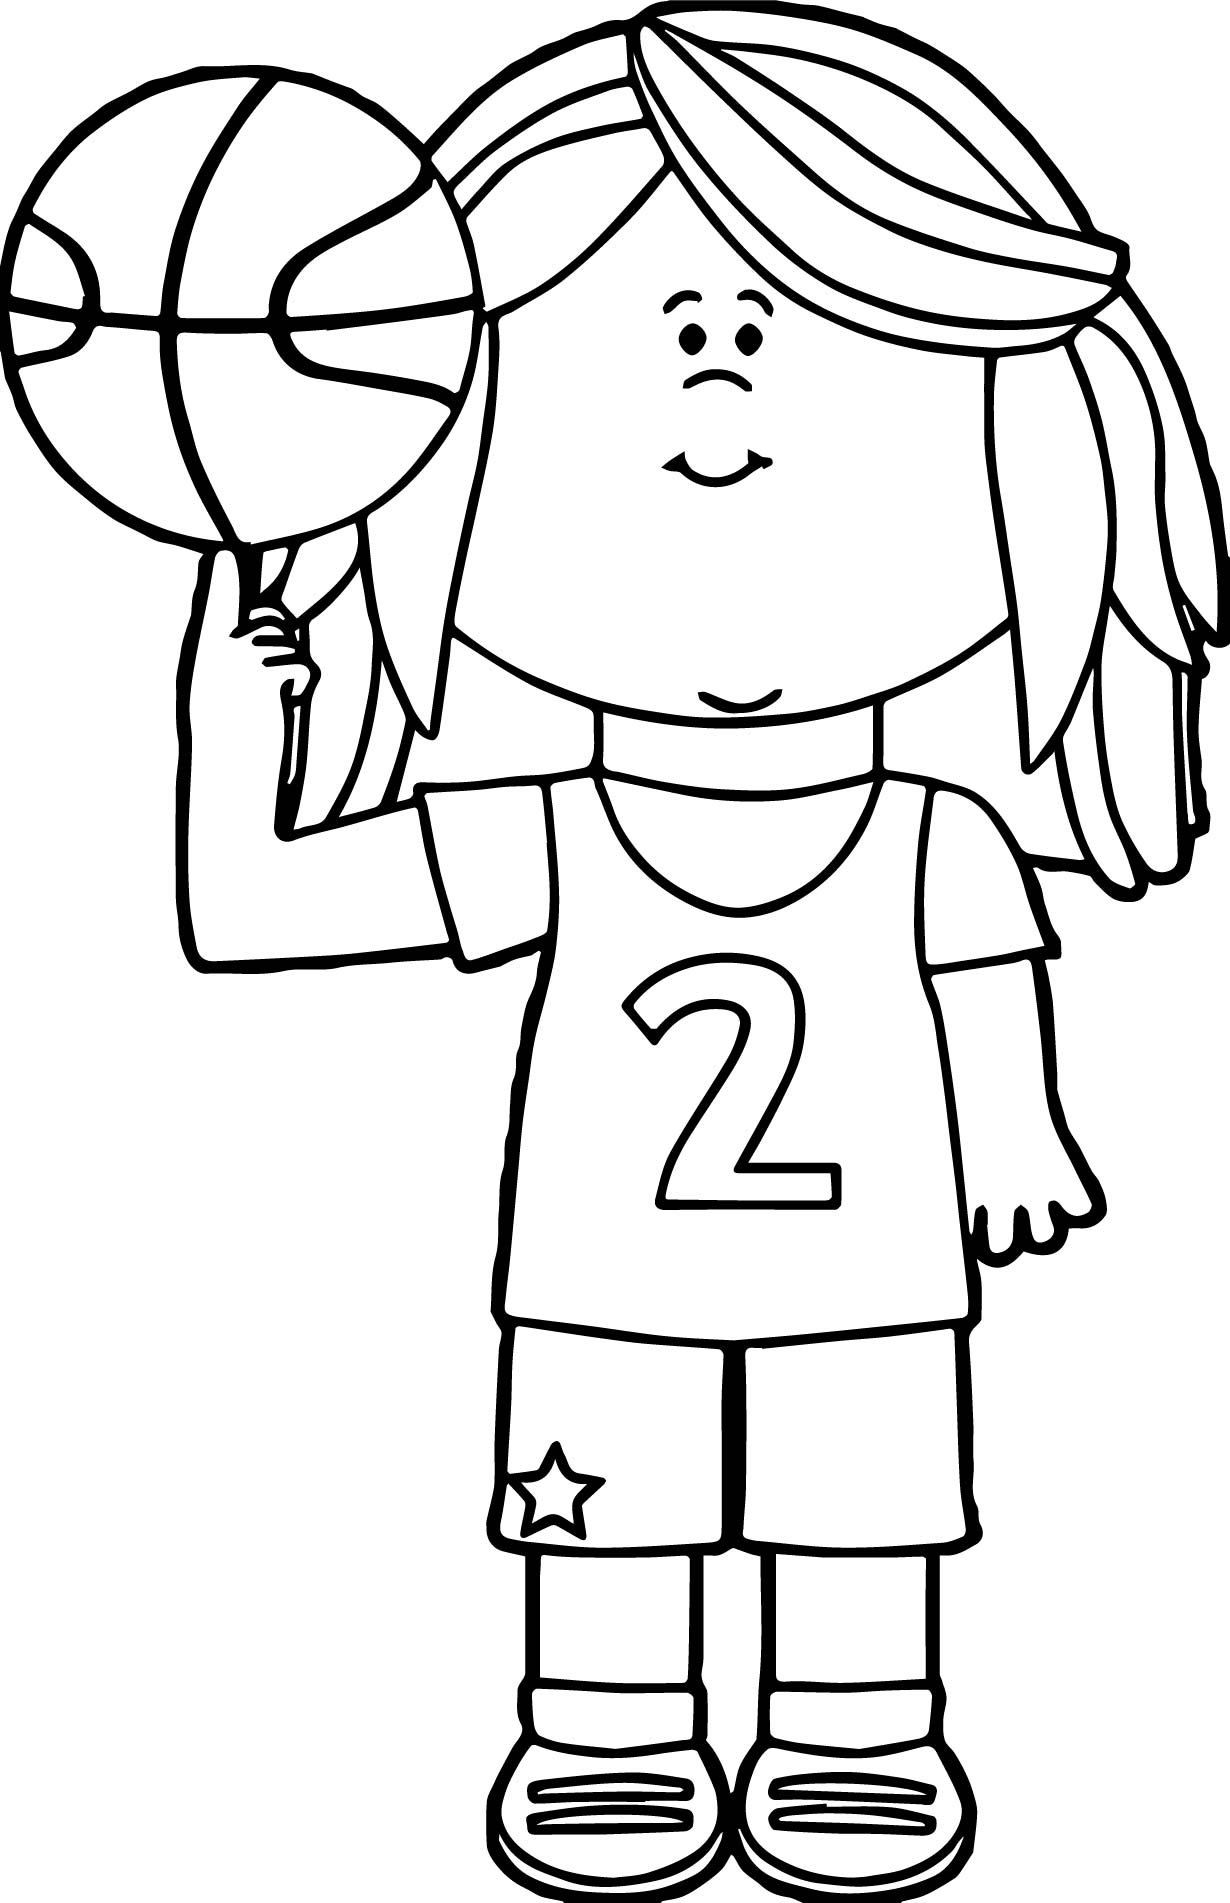 Real Basketball Coloring Pages. Girl Basketball Player Balancing Ball On Finger Playing Coloring  Page